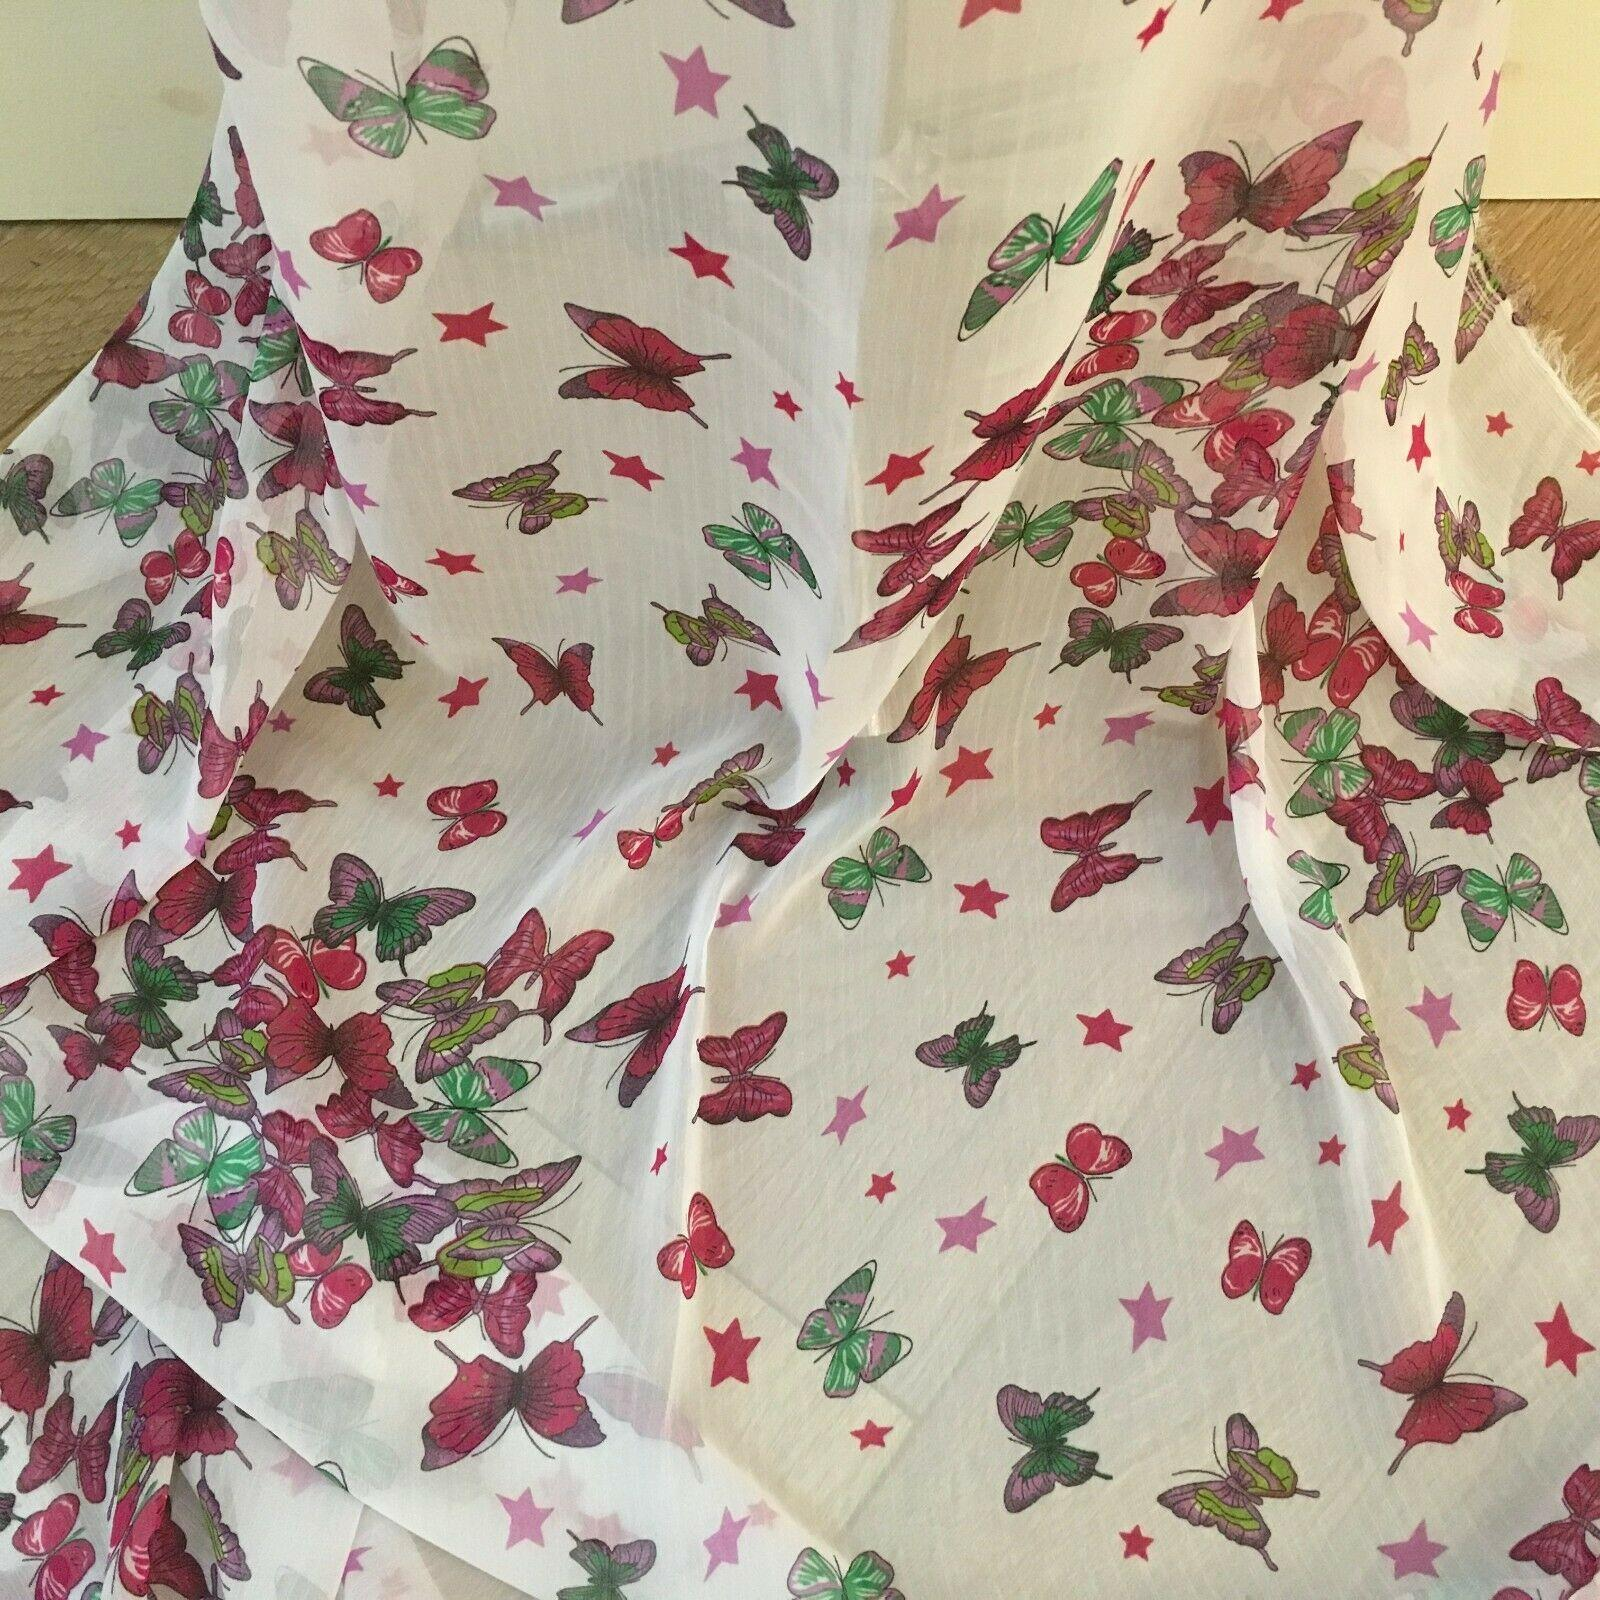 Pink Butterfly printed Crinkle Georgette Chiffon fabric 150cm wide MK1090-27